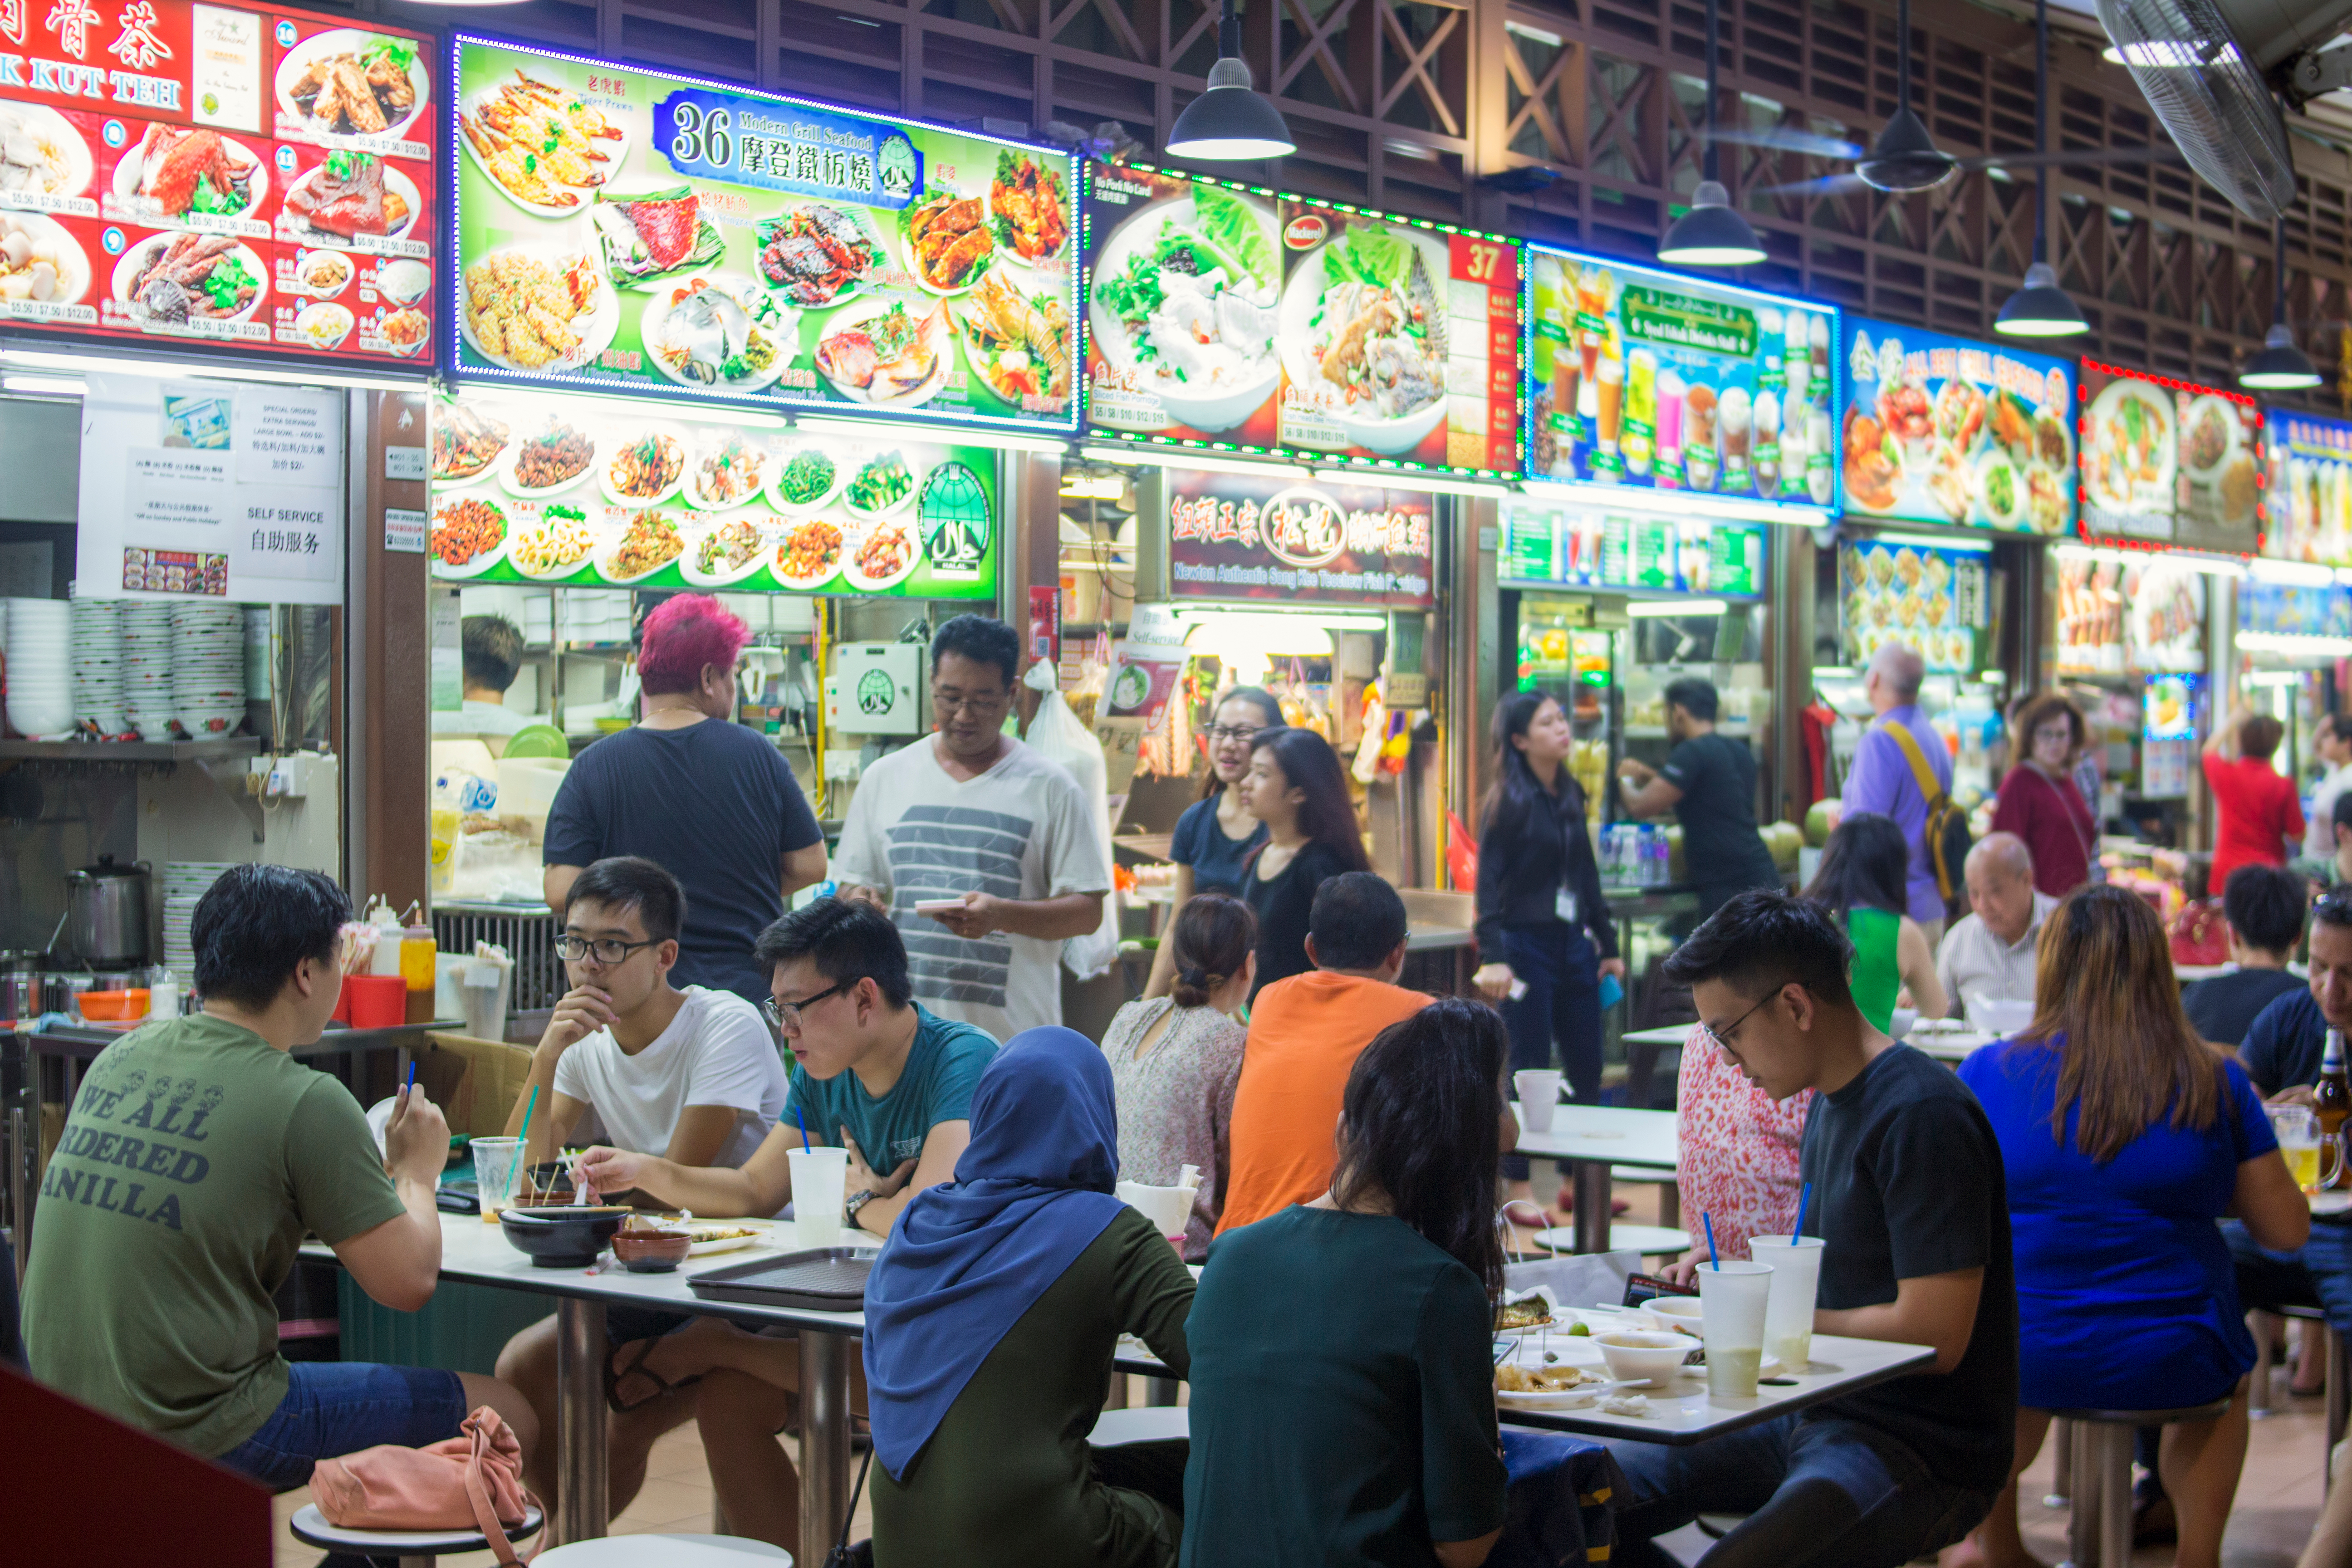 Newton food center is famous eating place for locals and tourists. Comprehensive food court offering one-stop of mix street food from Chinese, Malay and Indian hawkers